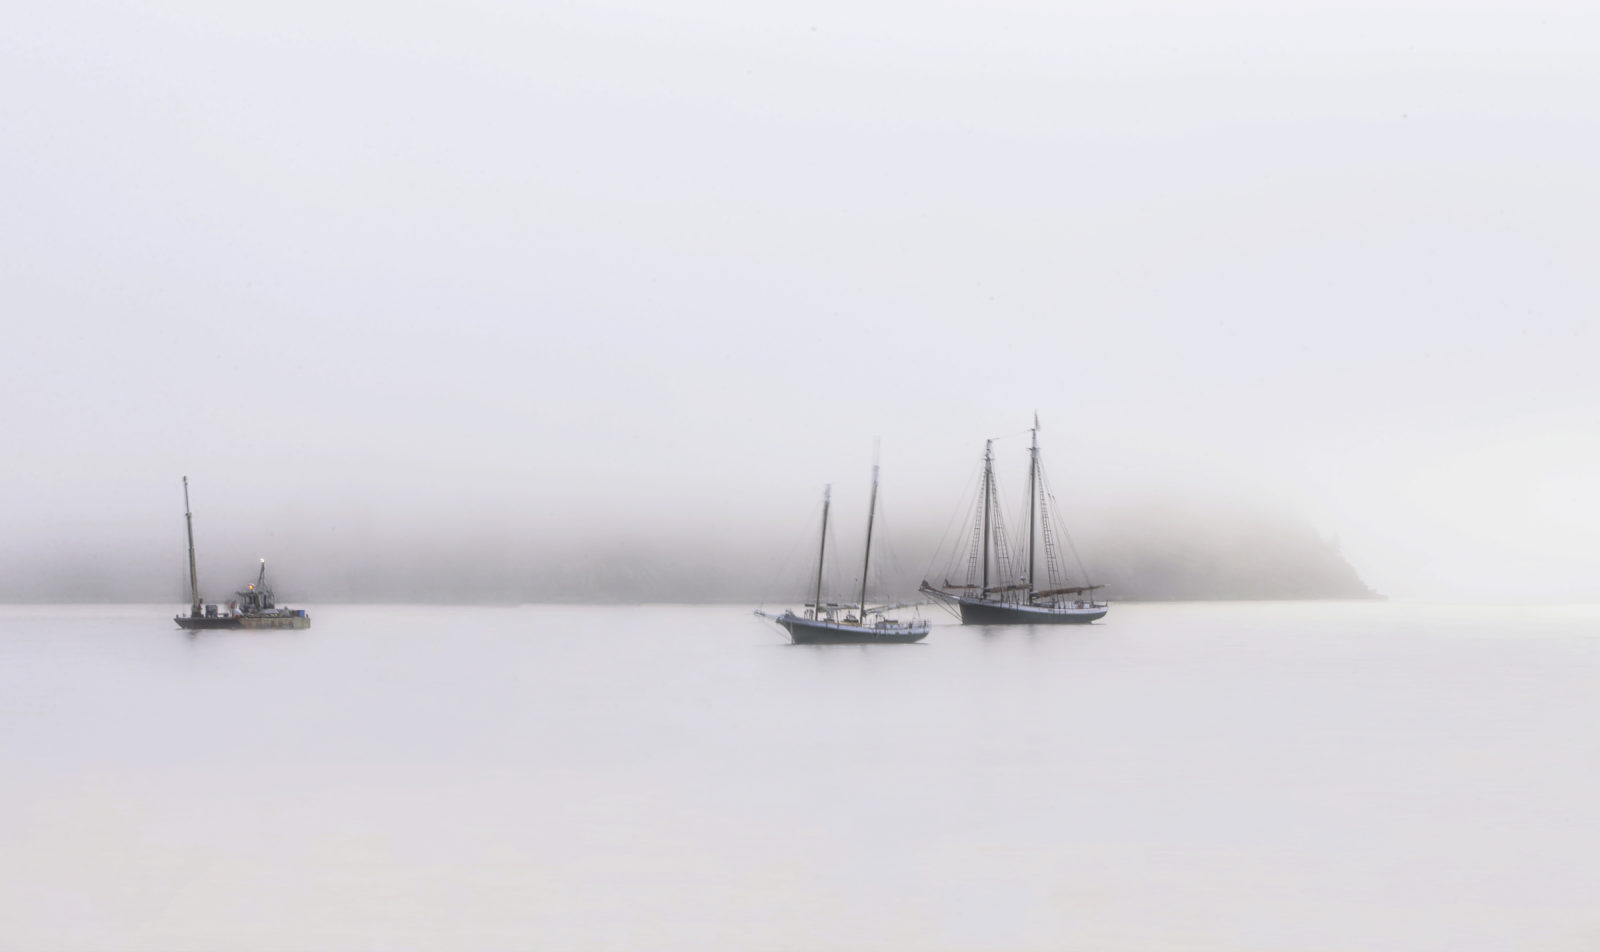 Fog Upon the Waters